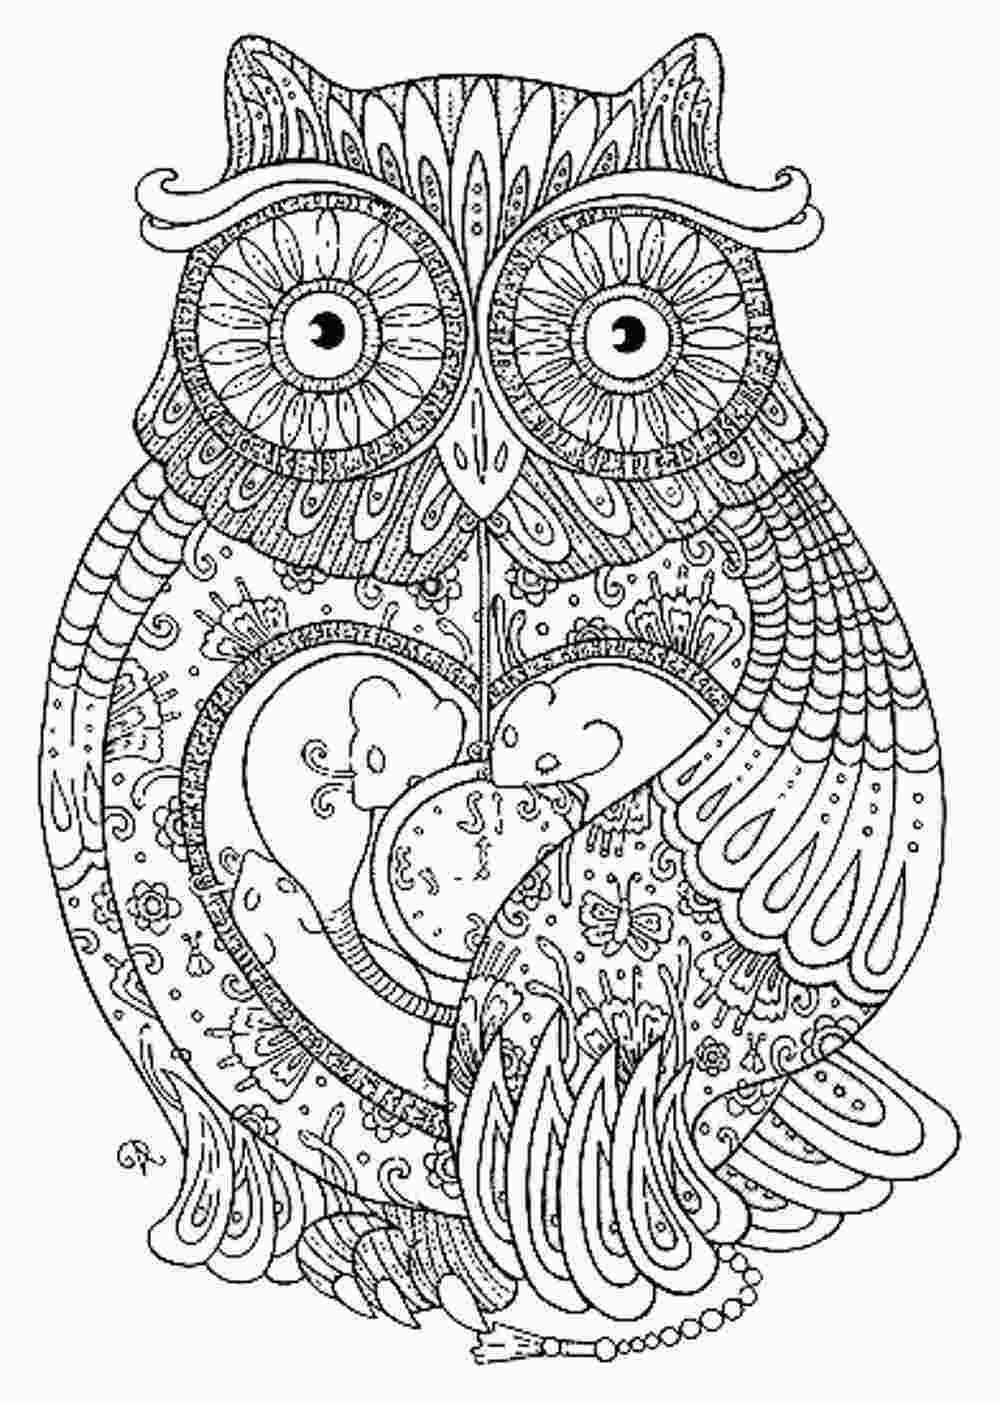 1000x1403 Best Geometric Animal Coloring Pages Kids Pics Of Concept